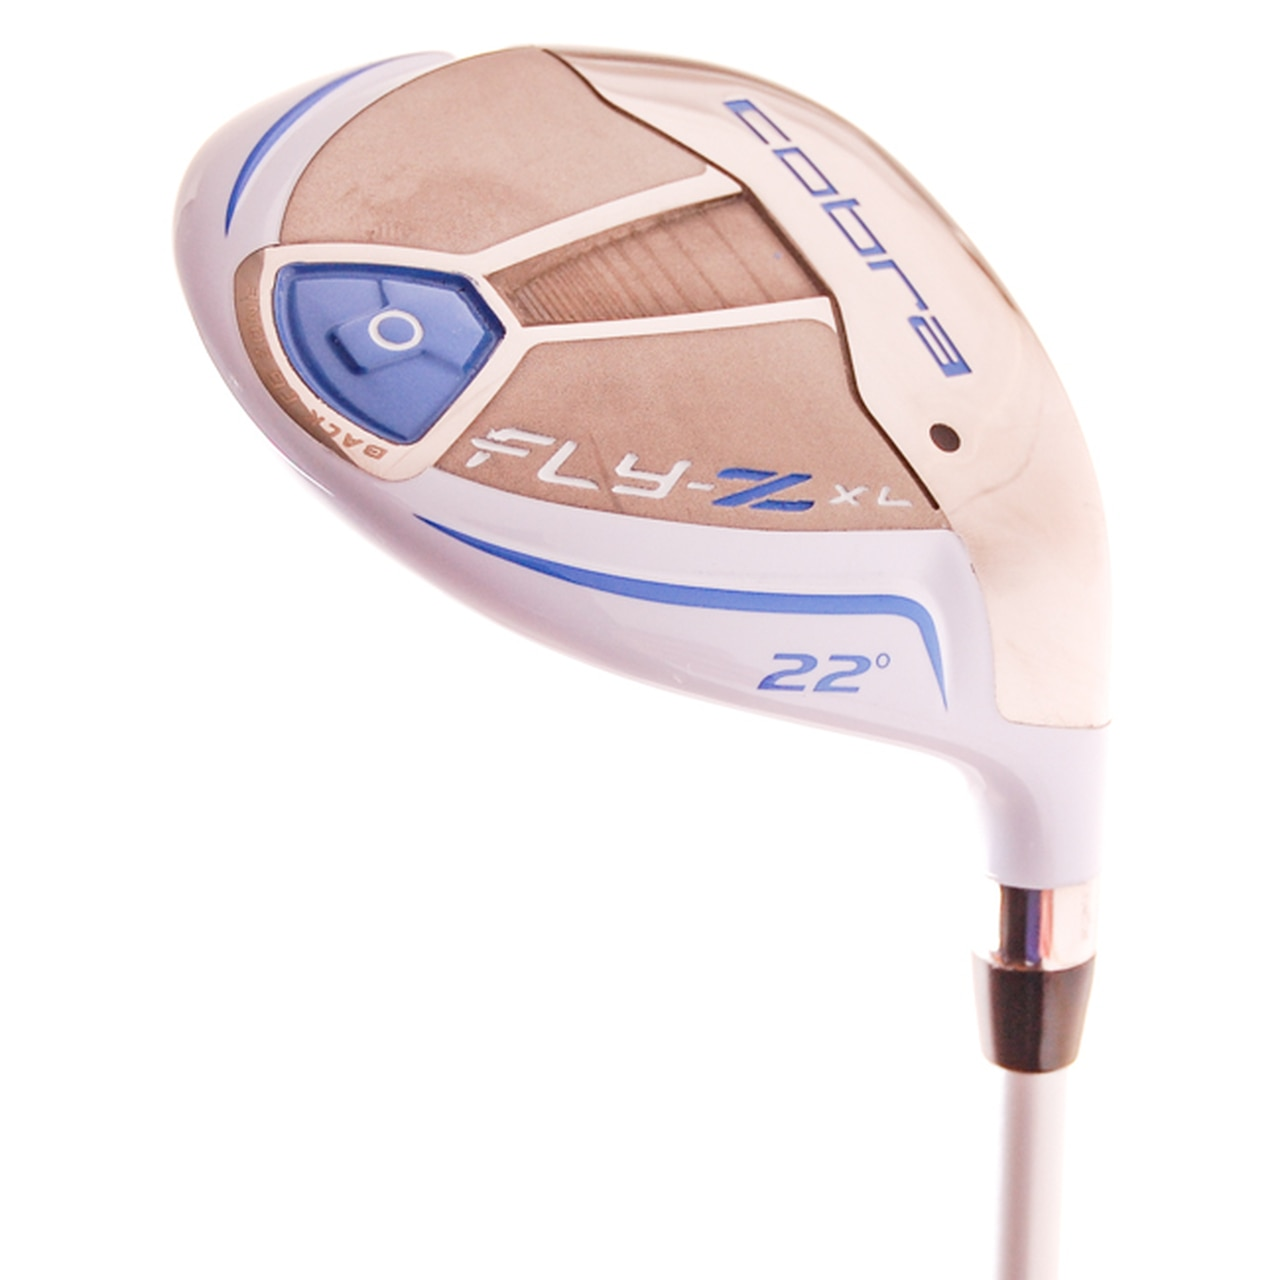 Cobra Fly-Z XL Blue fairwaywood no.5/22* DAMES *NIEUW*